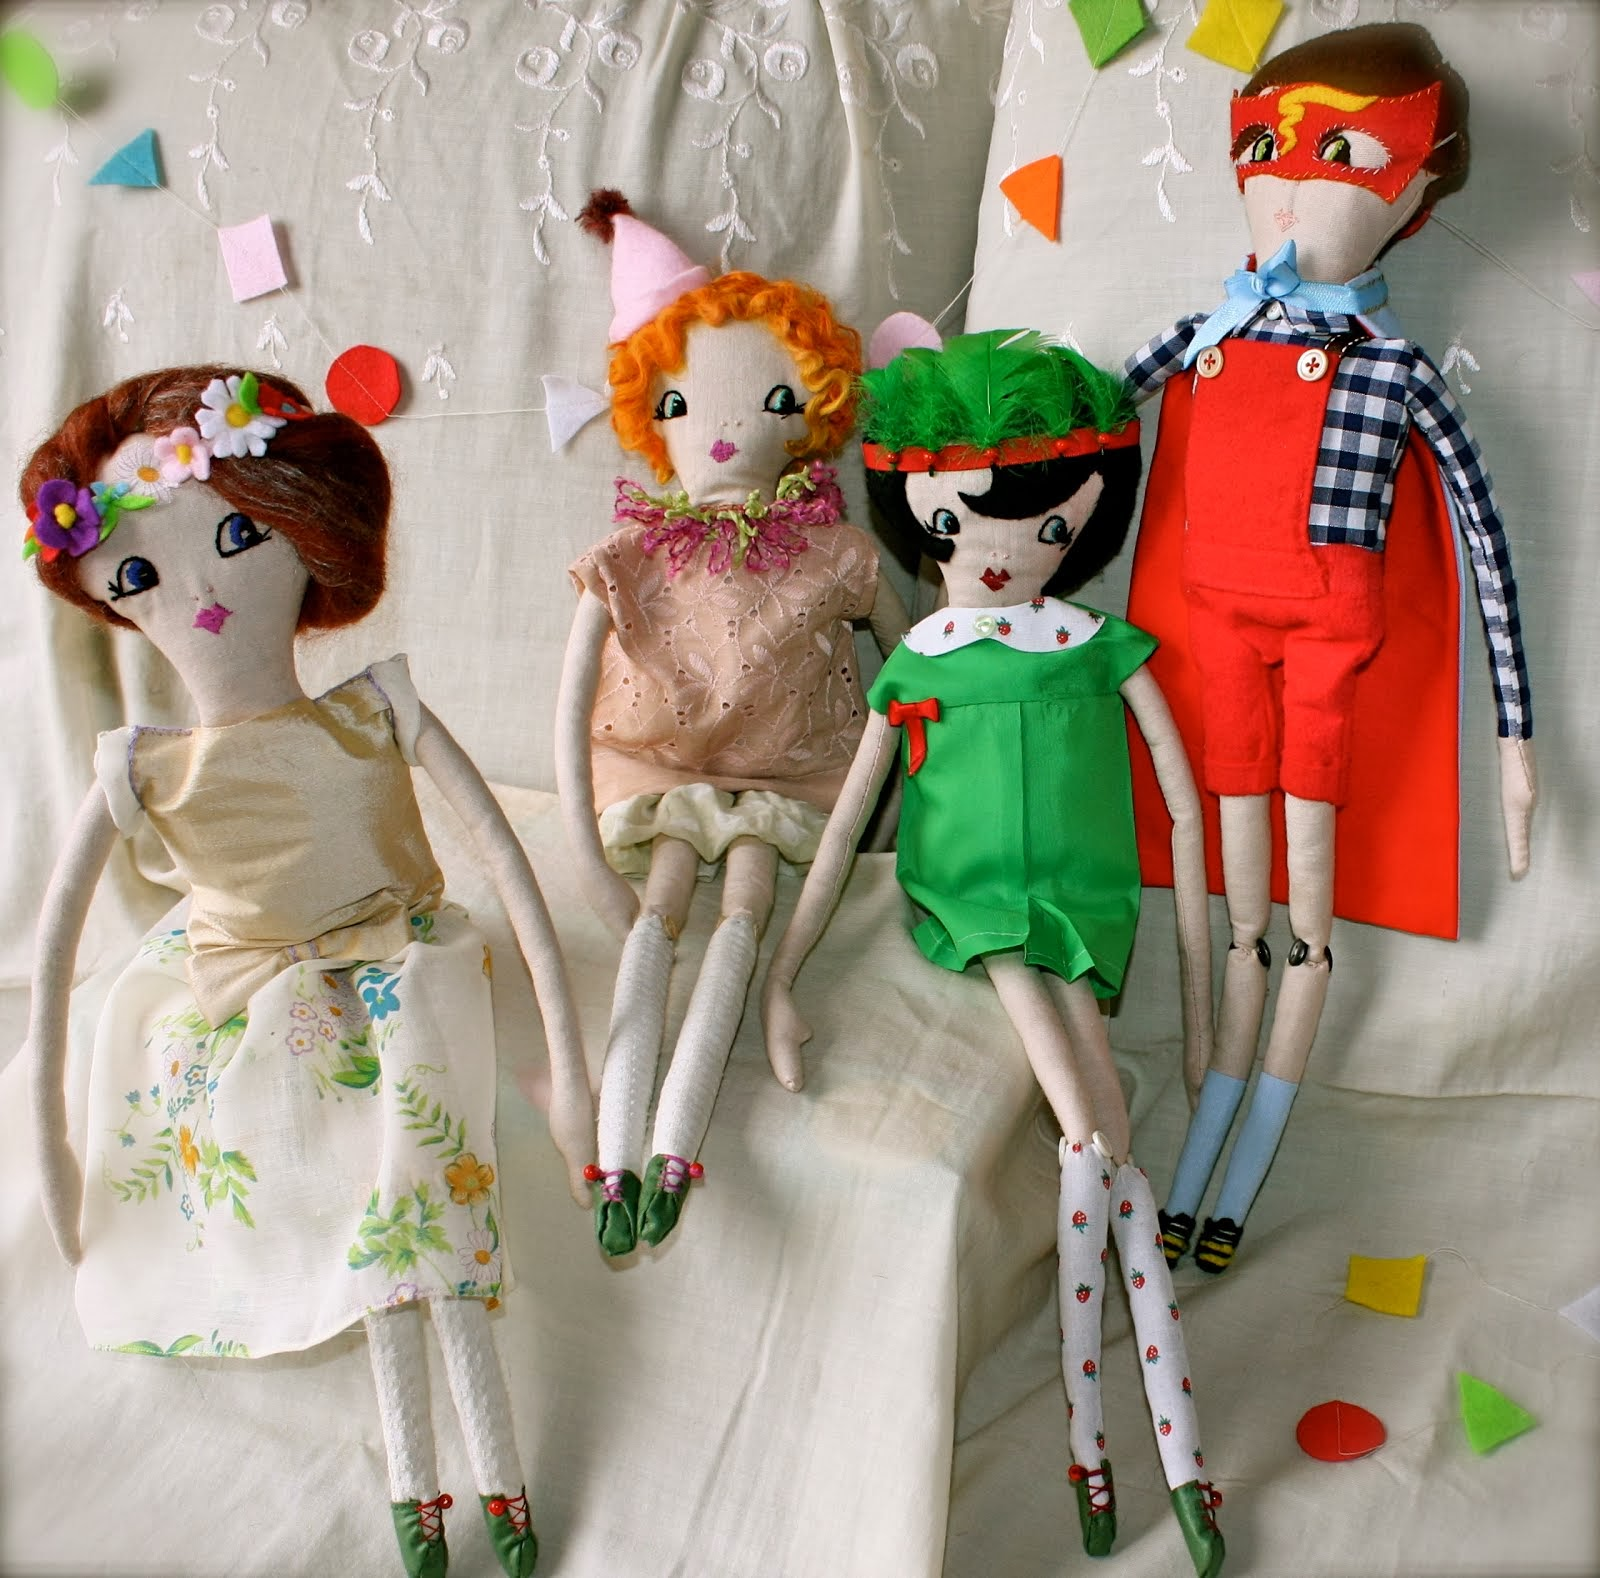 The Party Gang - Handmade Dolls